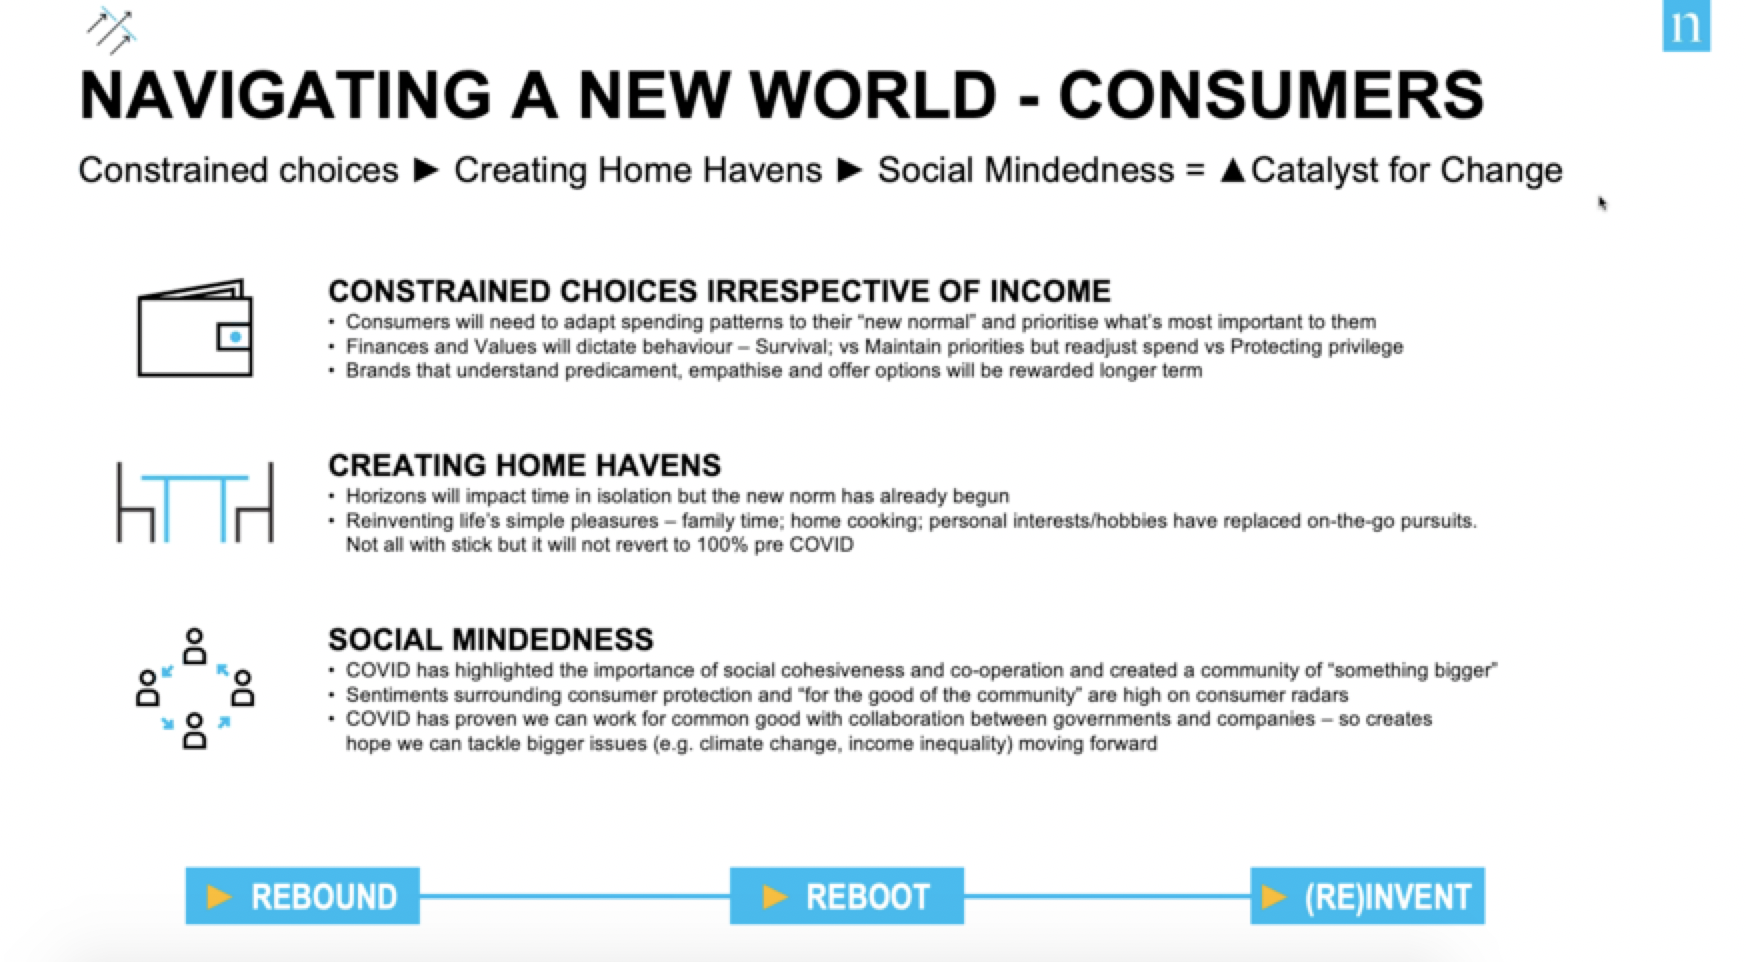 Nielsen_New World-Consumers.png